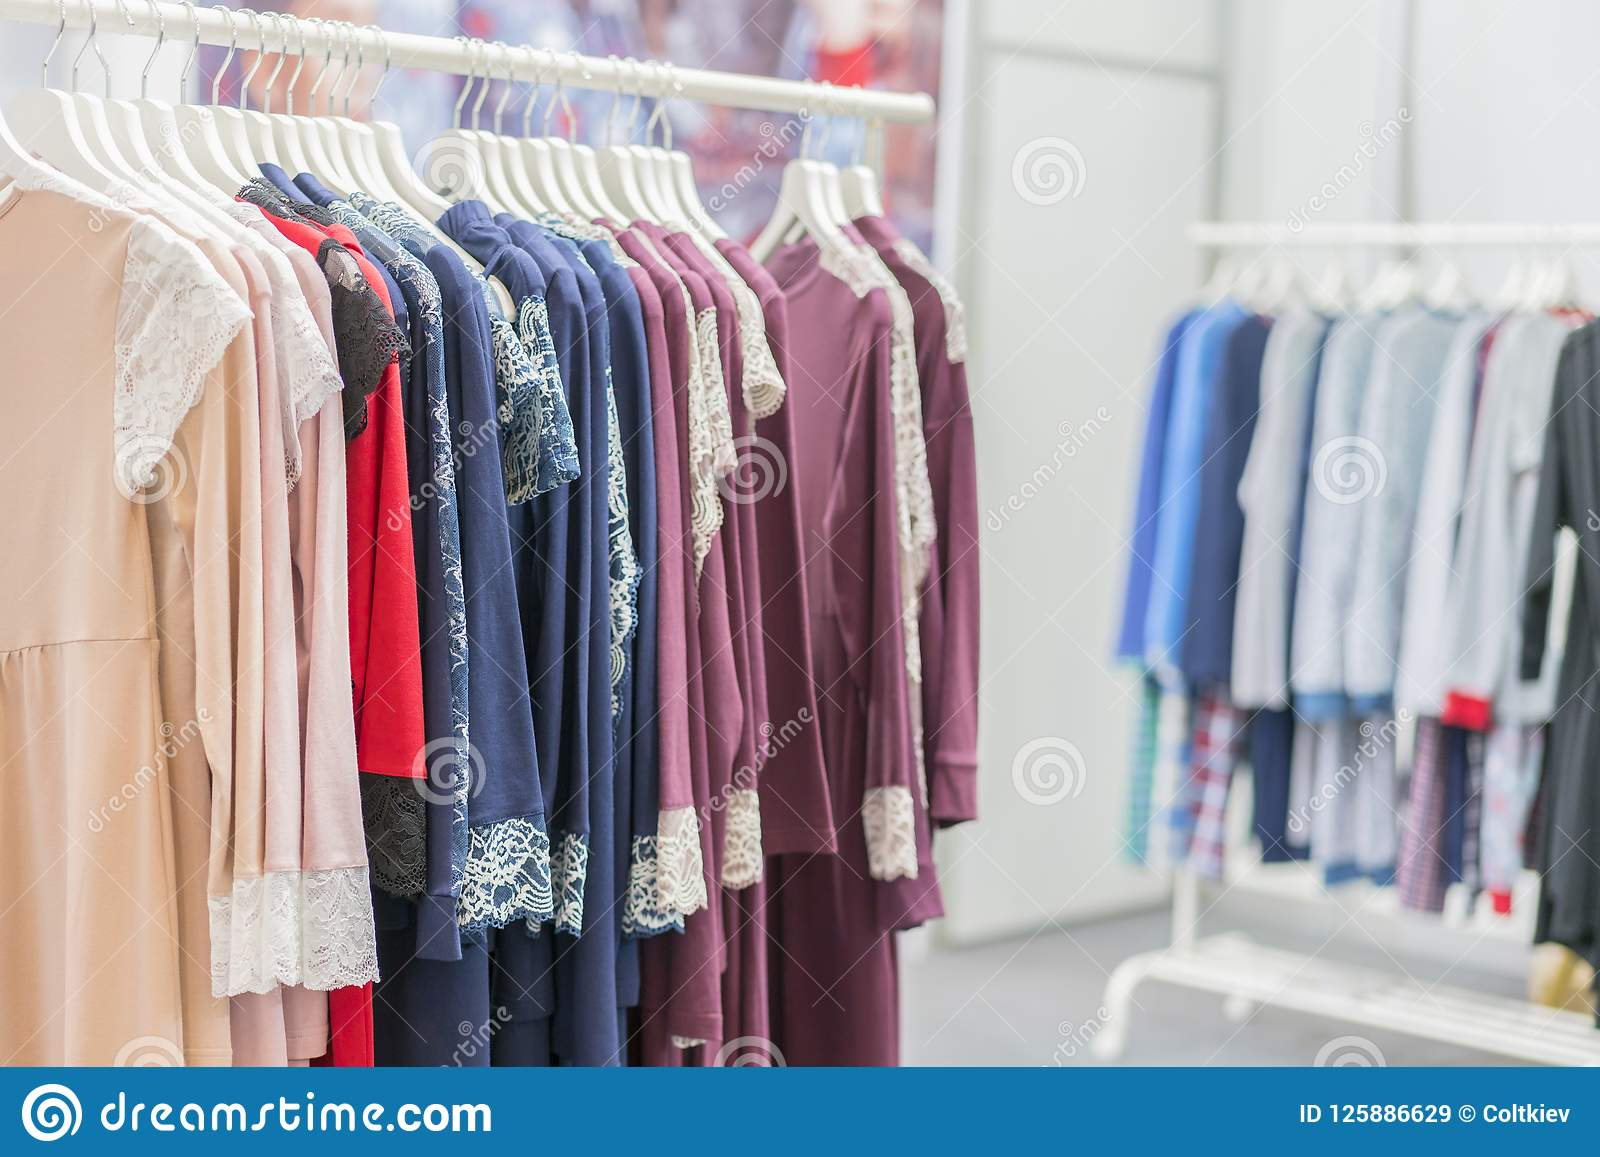 d35a48aced Clothing retails concept. Ladies pajamas on hangers in clothes store.  Pajama in shop.